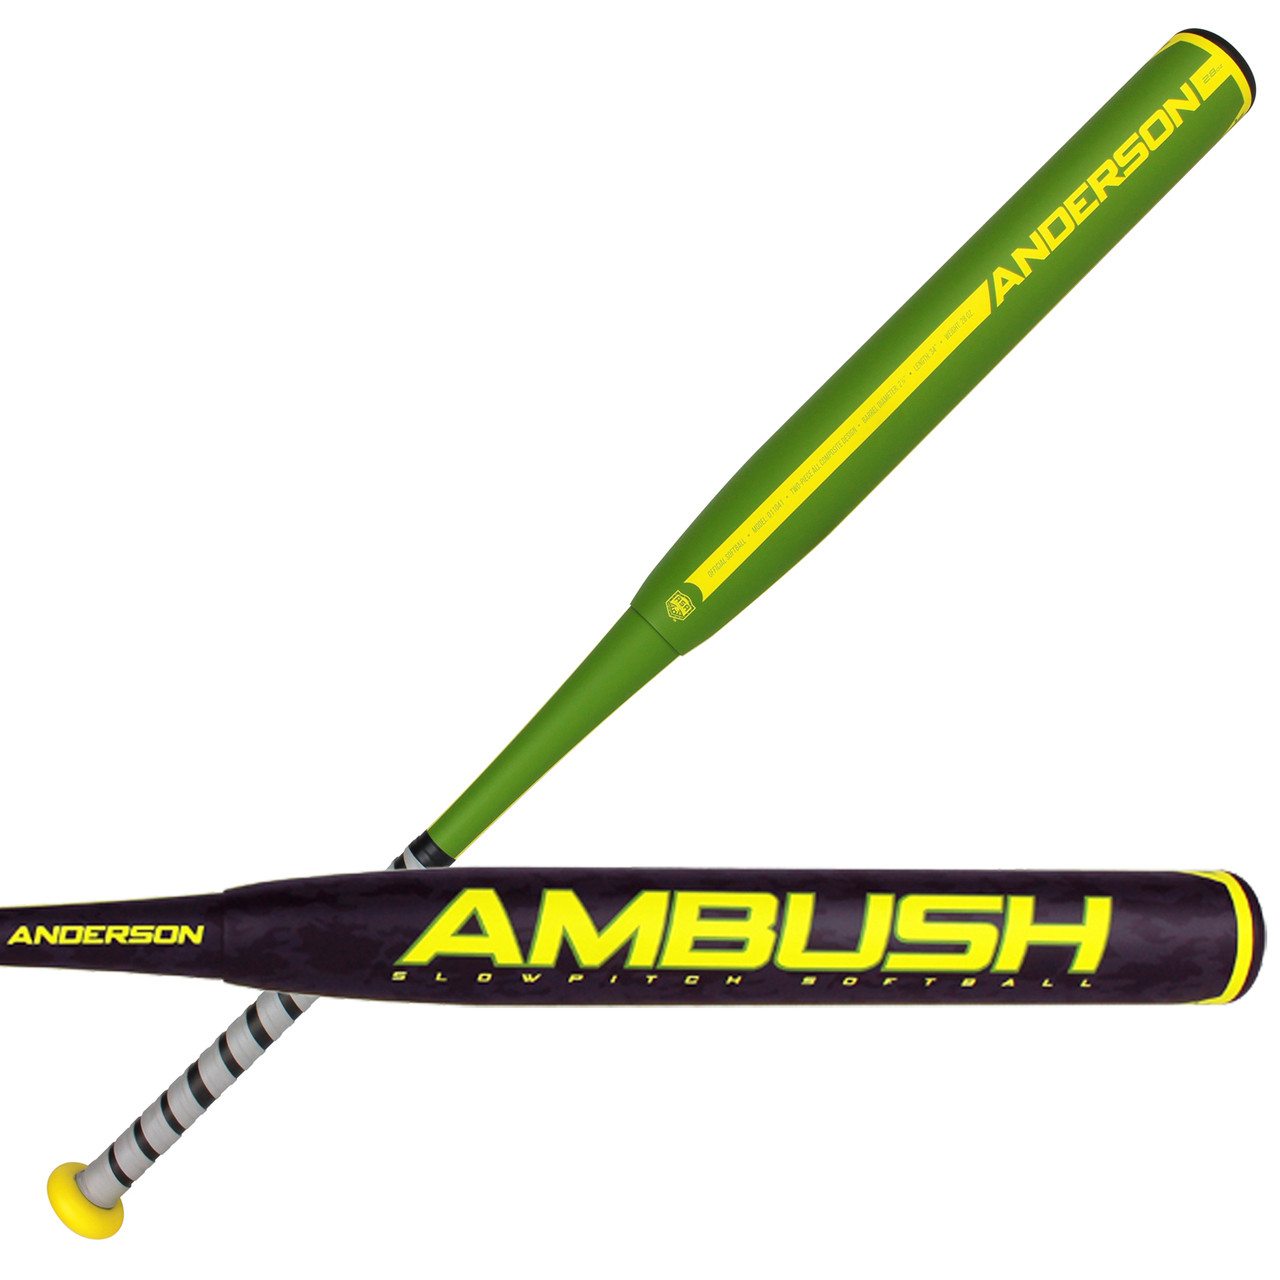 anderson-bat-company-ambush-asa-slow-pitch-softball-bat-34-inch-26-oz 110413426 Anderson 874147007723 The 2017 <strong>Ambush Slow Pitch</strong> two piece composite bat is made